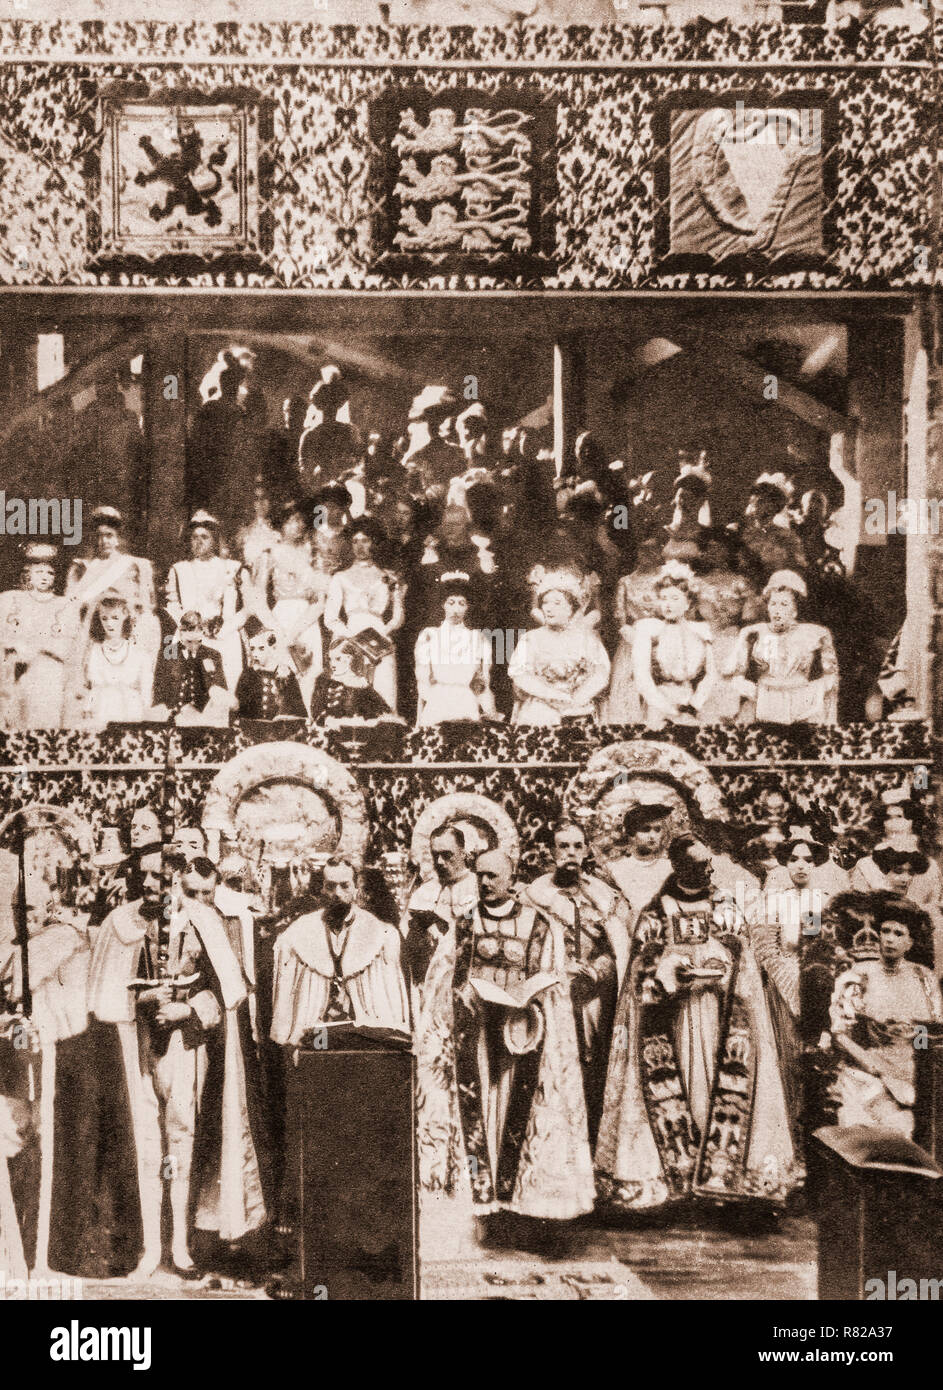 The coronation of George V and Mary of Teck as King and Queen of the United Kingdom and the British Empire taking place at Westminster Abbey, London, on 22 June 1911. This was second of four such events held during the 20th century and the last to be attended by royal representatives of the great continental European empires. - Stock Image